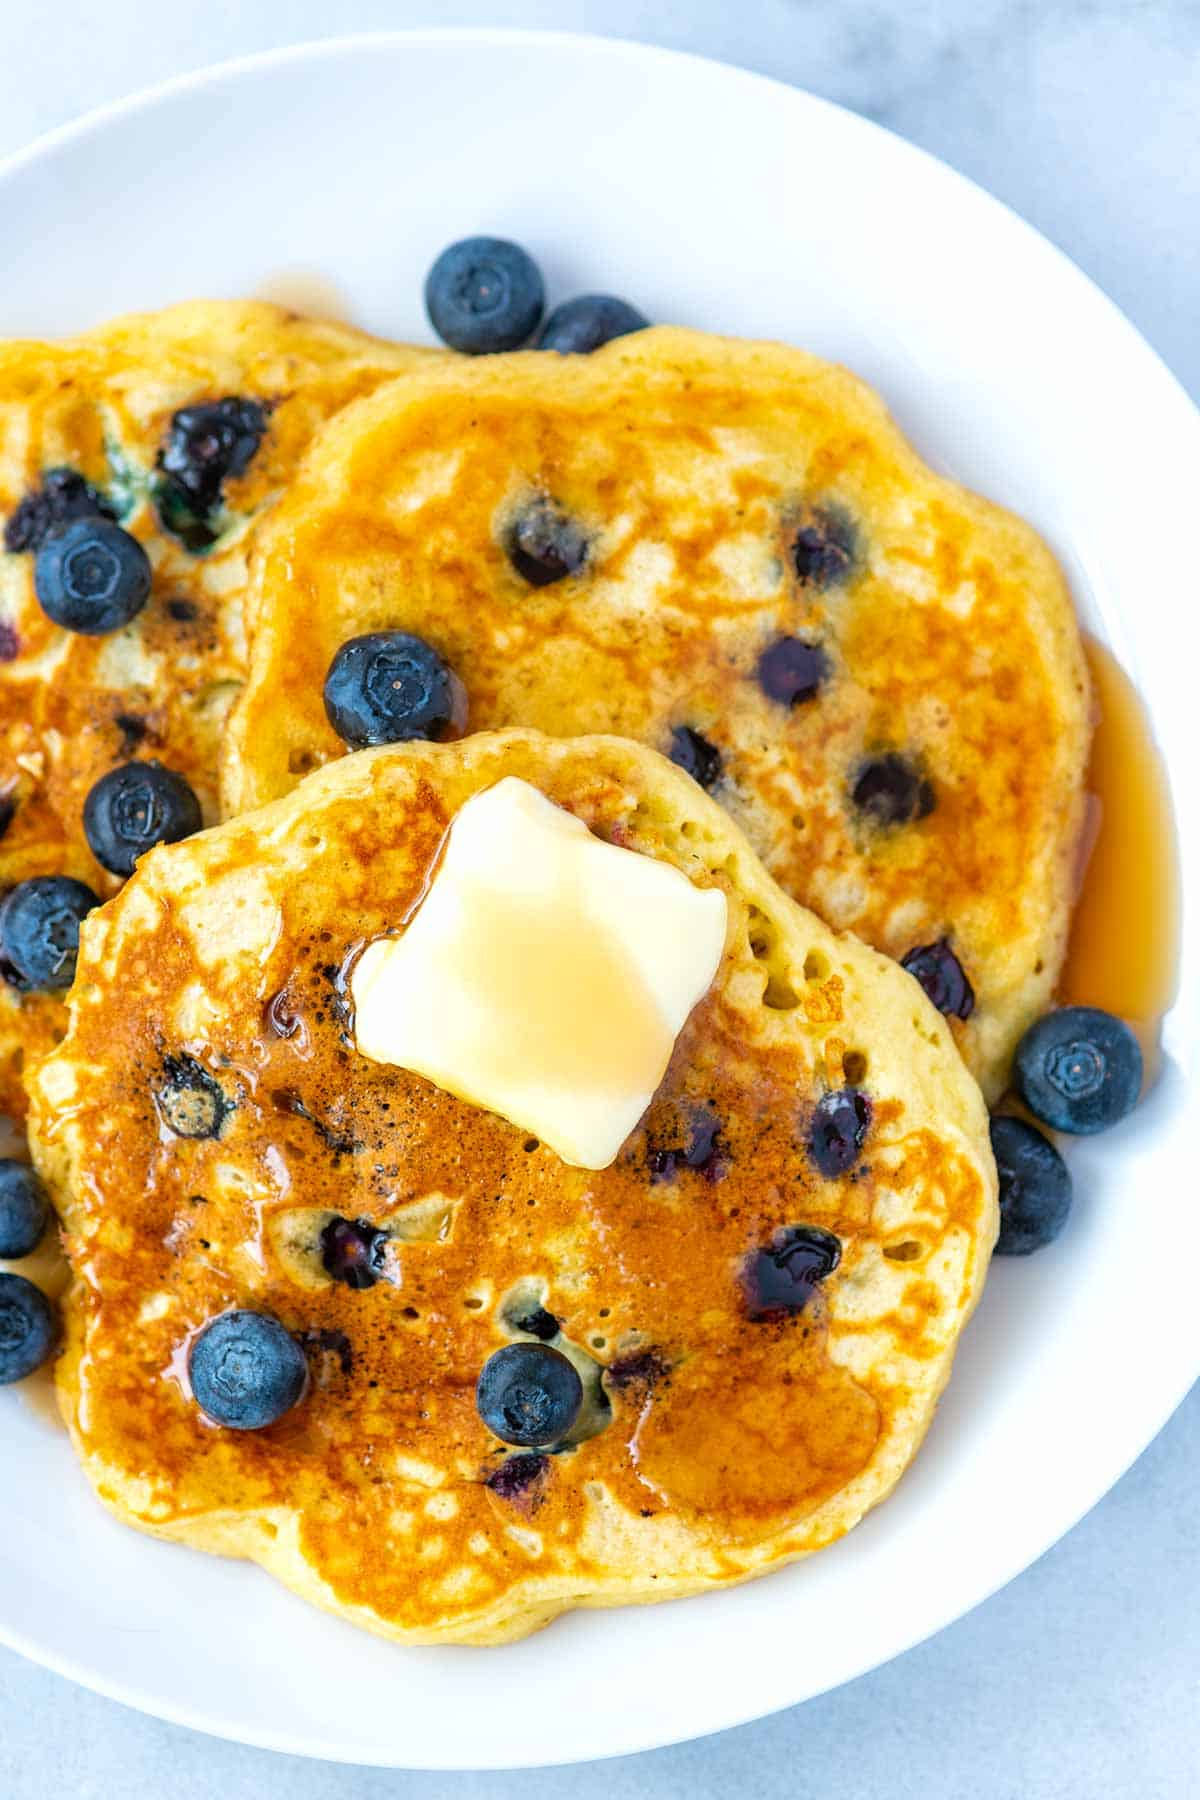 How to Make the Best Blueberry Pancakes